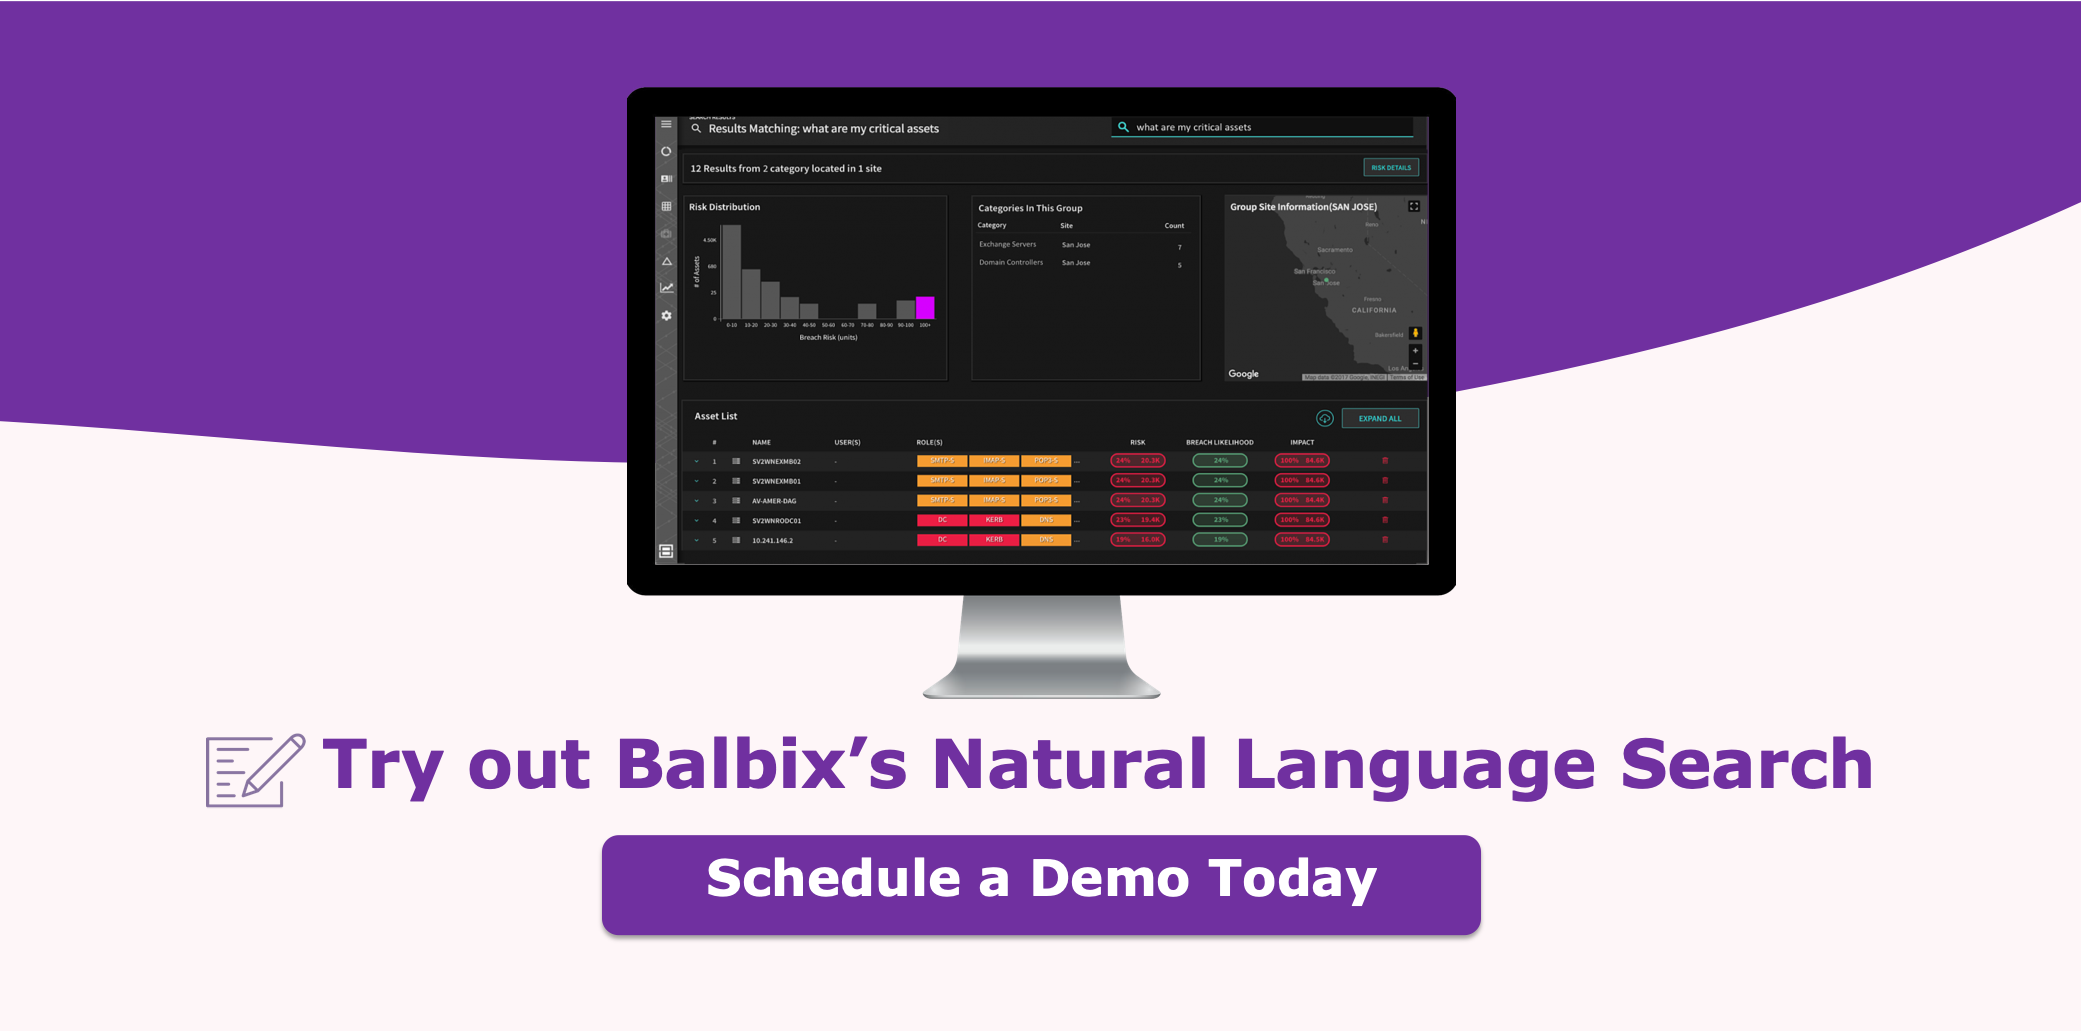 Try out Balbix's Natural Language Search